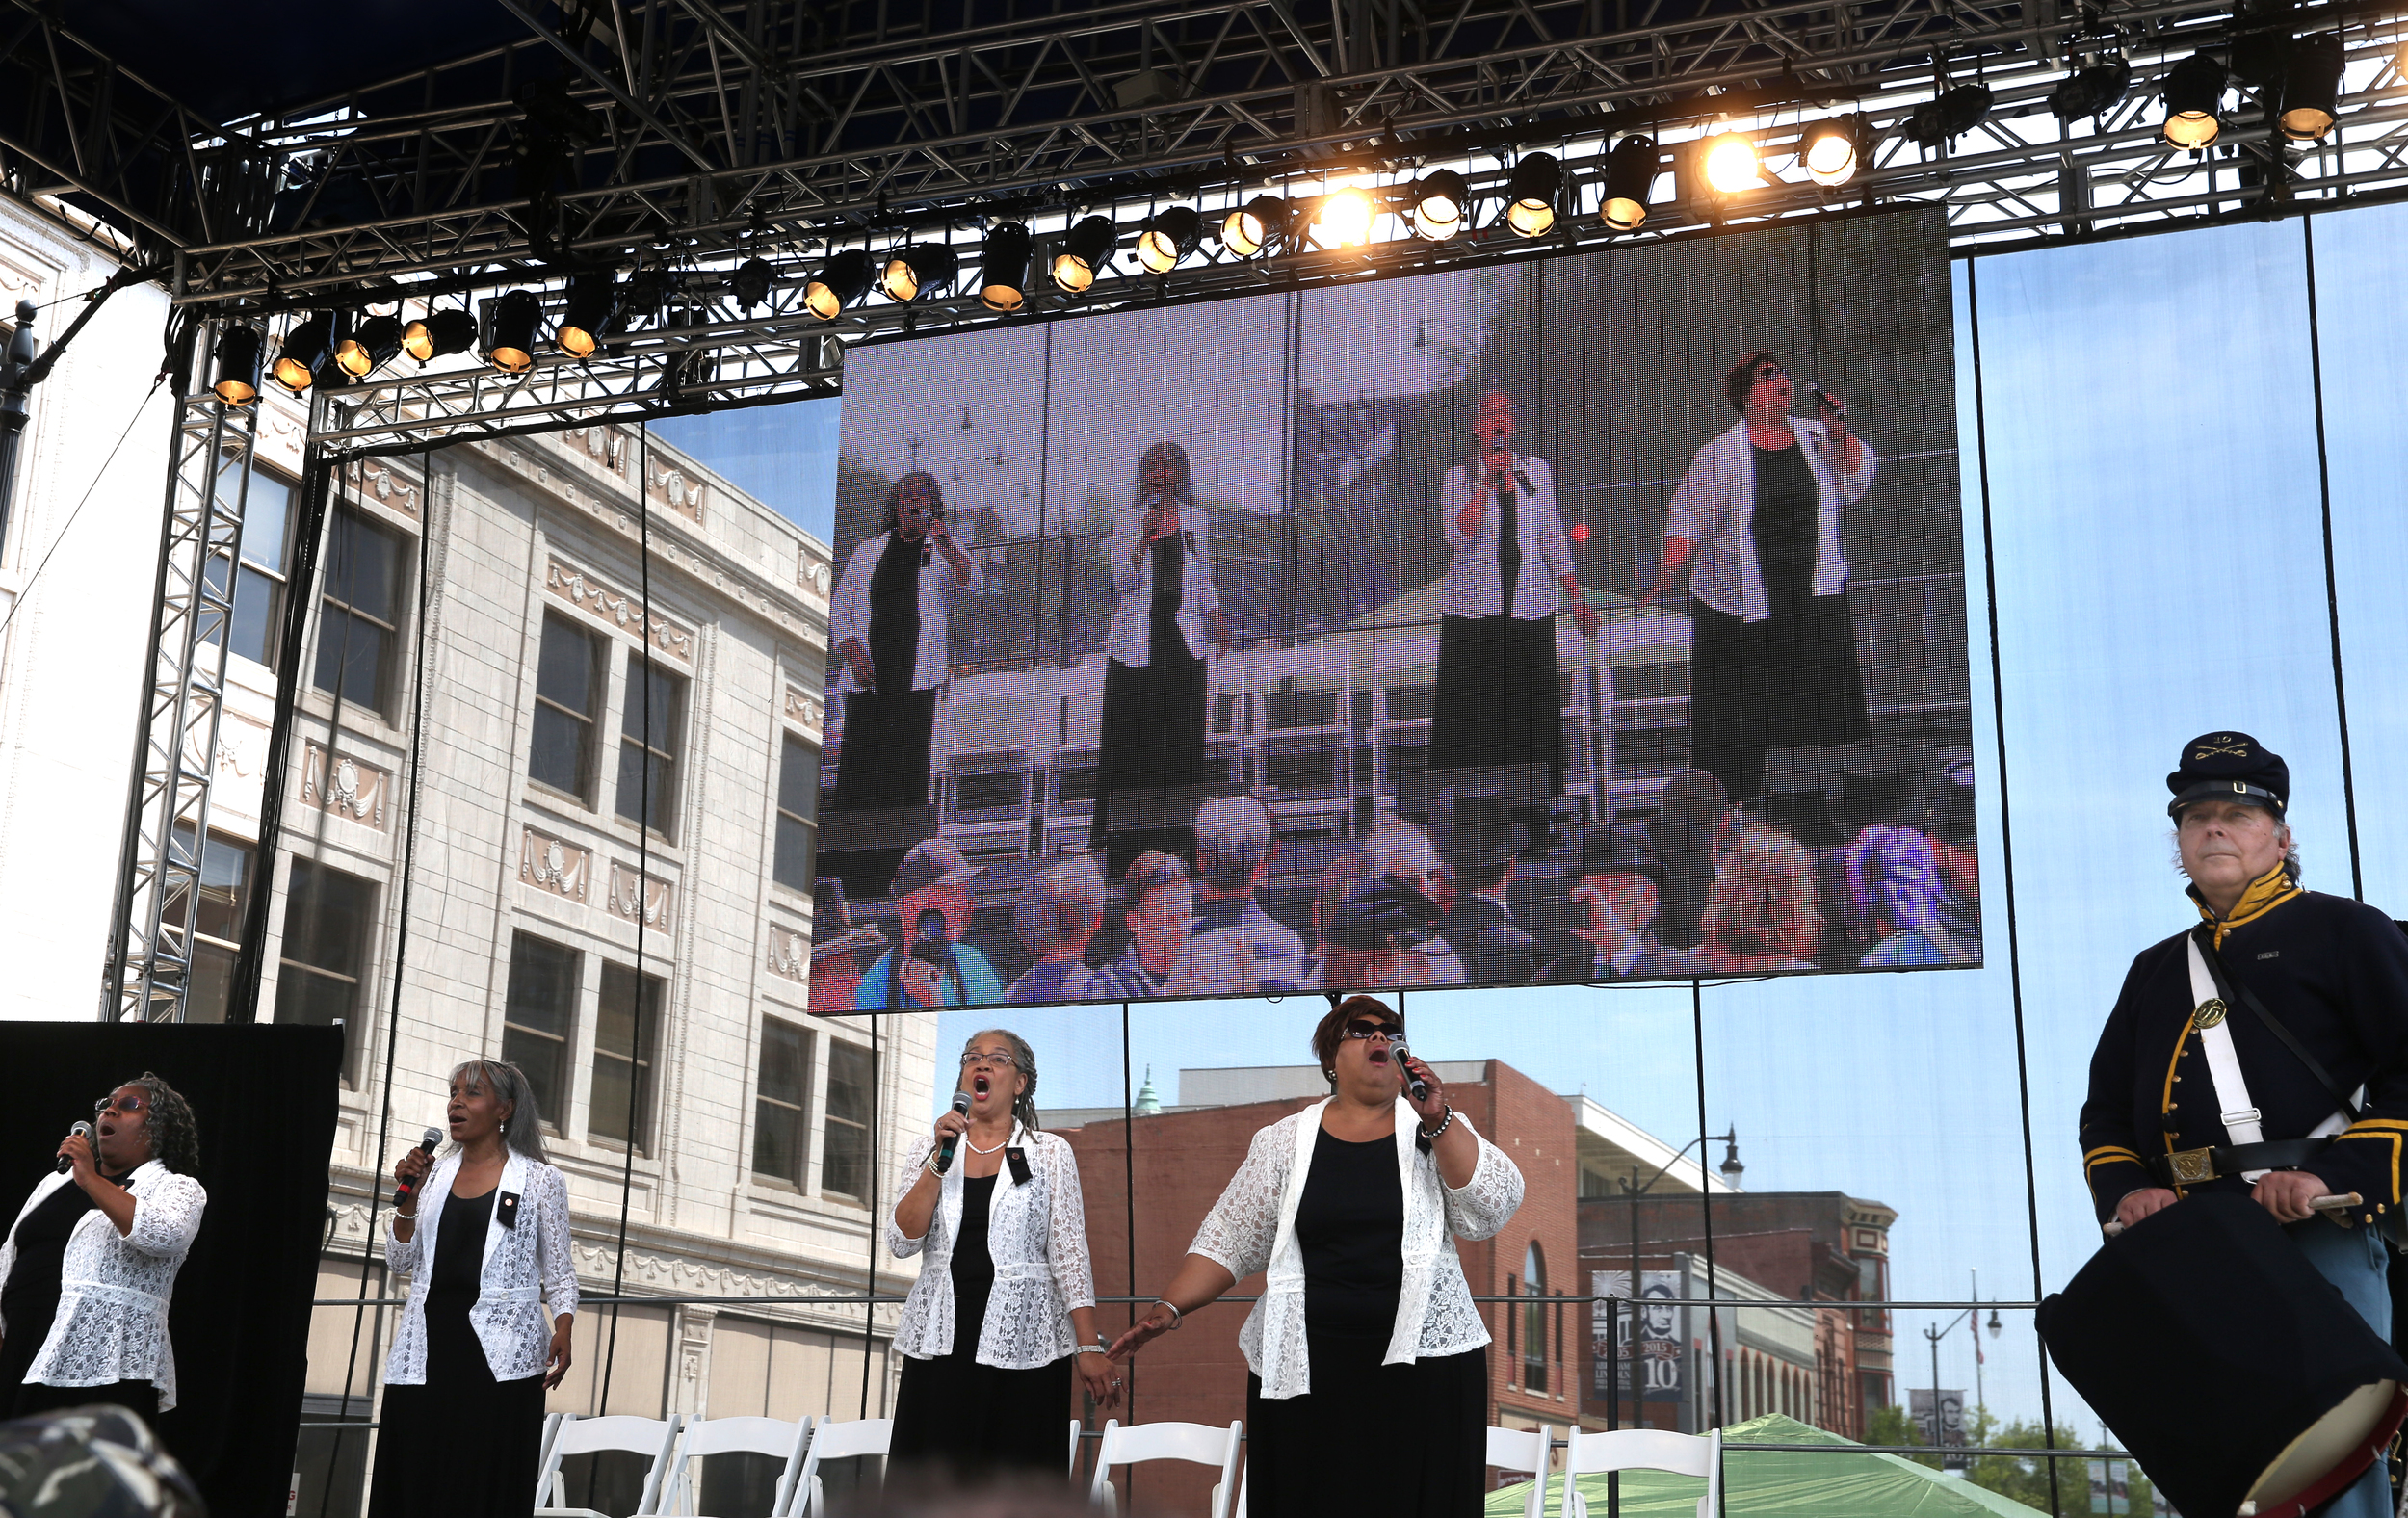 """The Four Sopranos, a Springfield-based gospel quartet made up from left to right: Neyna Johnson, Tracie Shaw, Paula Irby, and Esther Davis sing """"The Battle Hymn of the Republic"""" onstage downtown on Sixth St. before the Lincoln coffin was placed into the hearse for the final procession to Oak Ridge Cemetery Sunday afternoon. David Spencer/The State Journal-Register"""